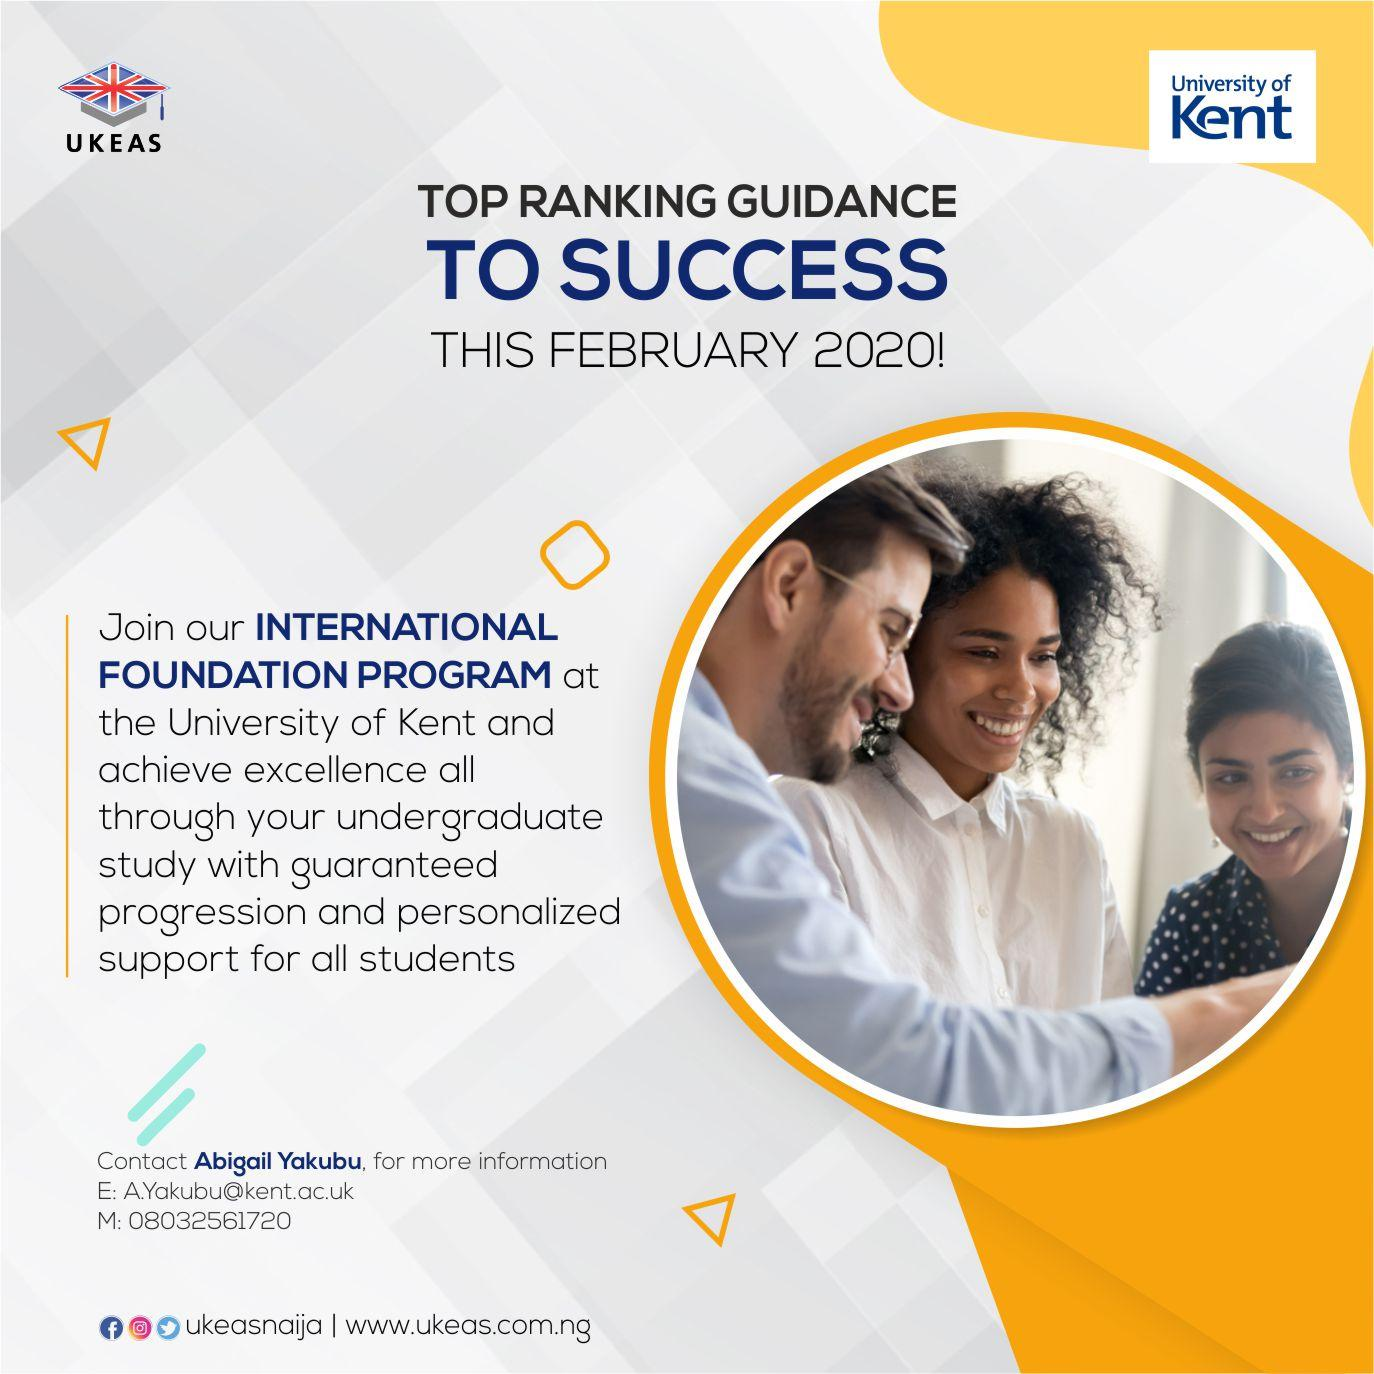 Achieve Excellence with University of Kent by February 2020!